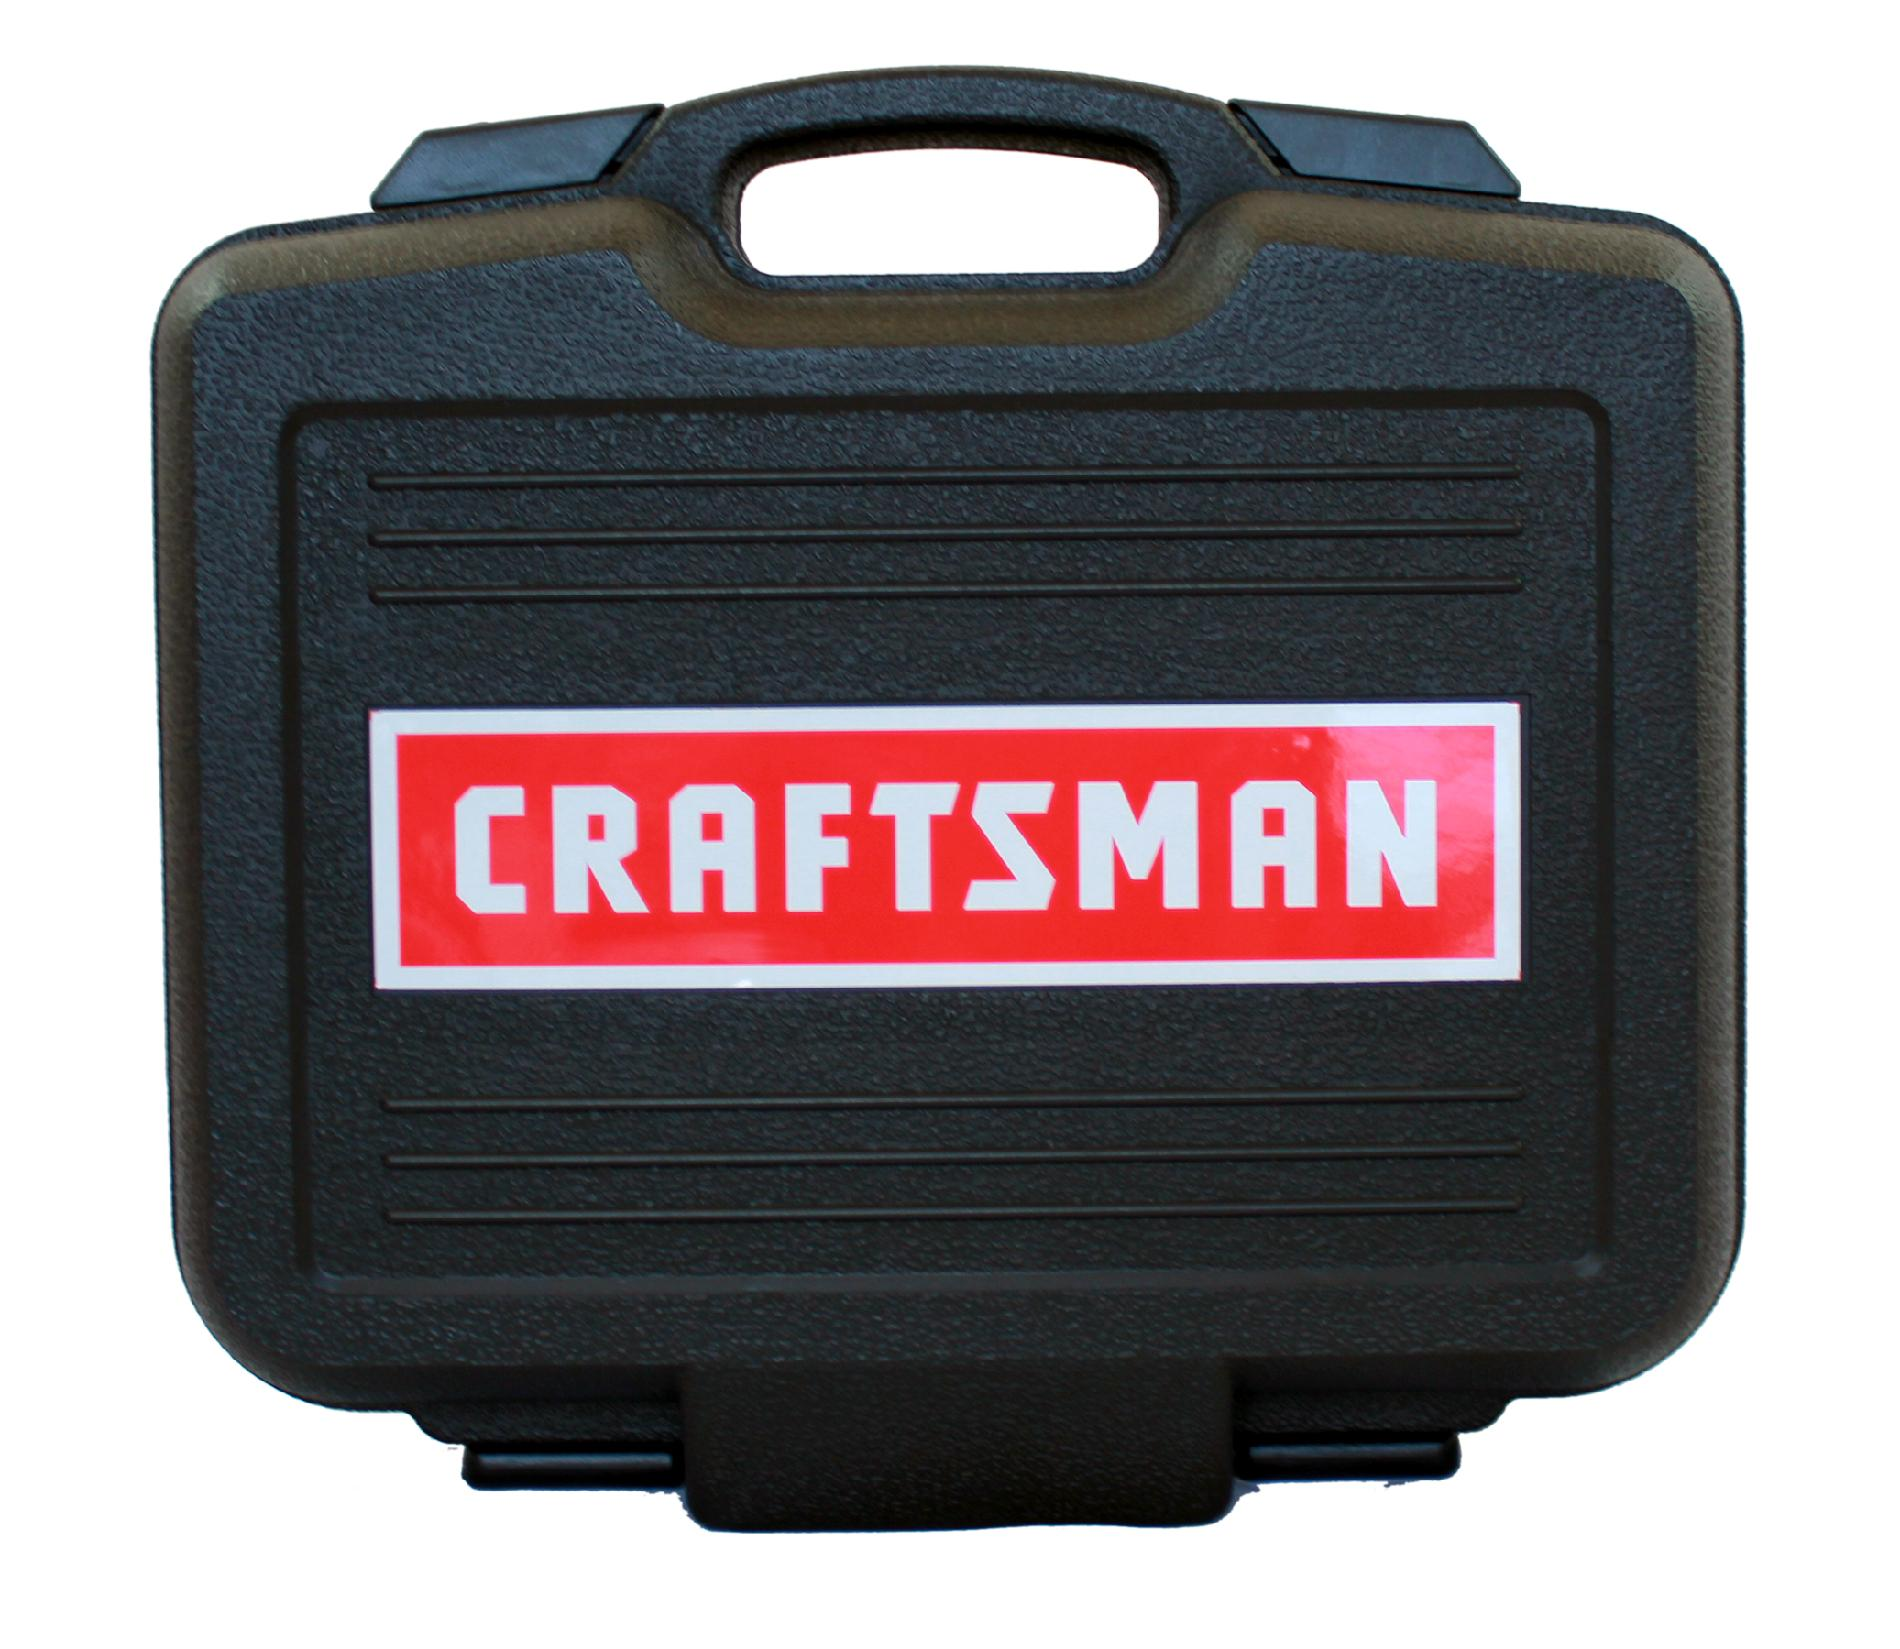 Craftsman Magnesium 20 Gauge Wide Crown Stapler